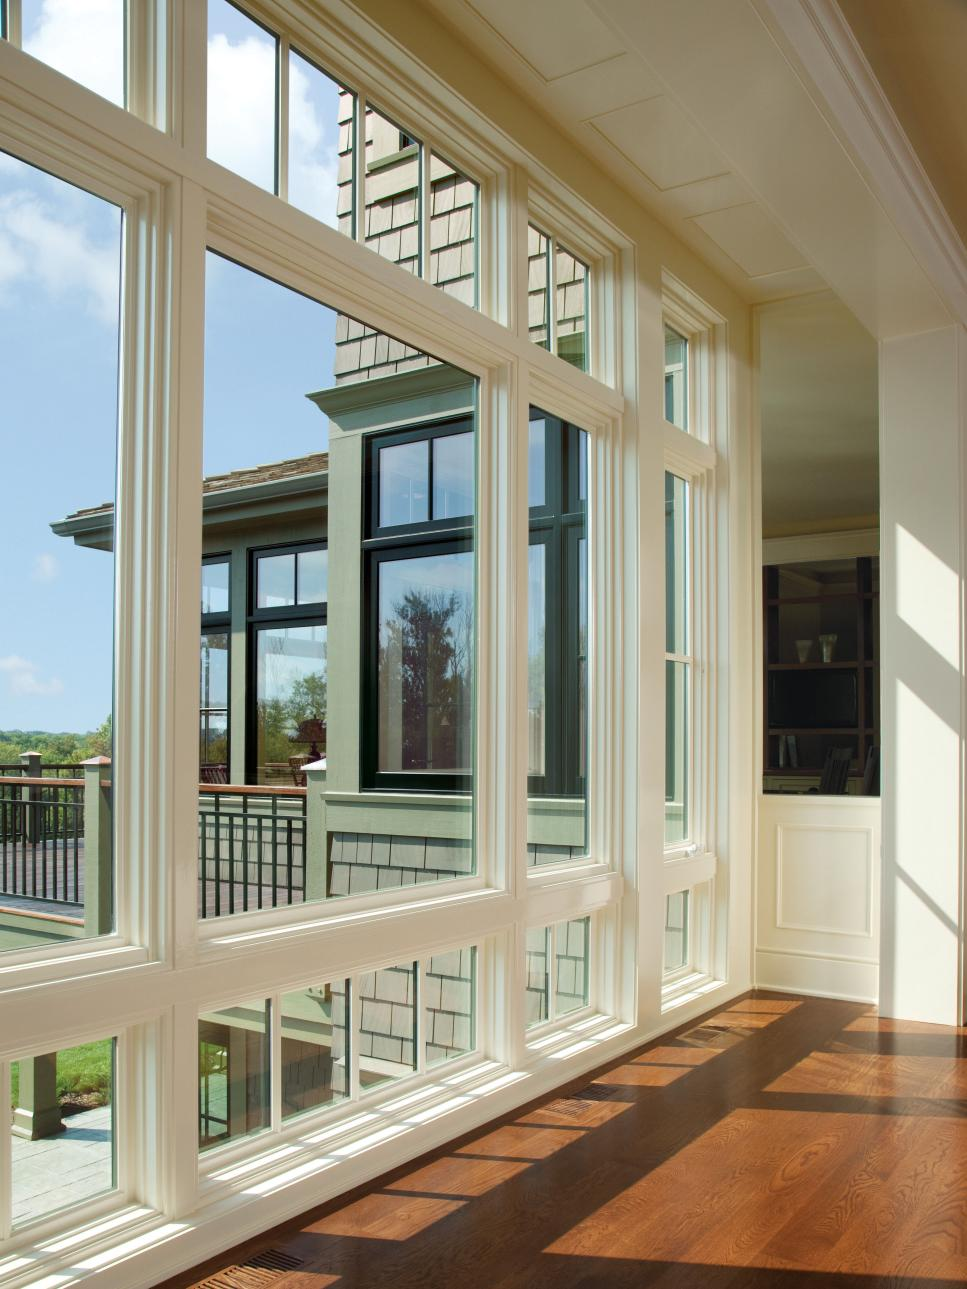 8 types of windows hgtv for Bay window remodel